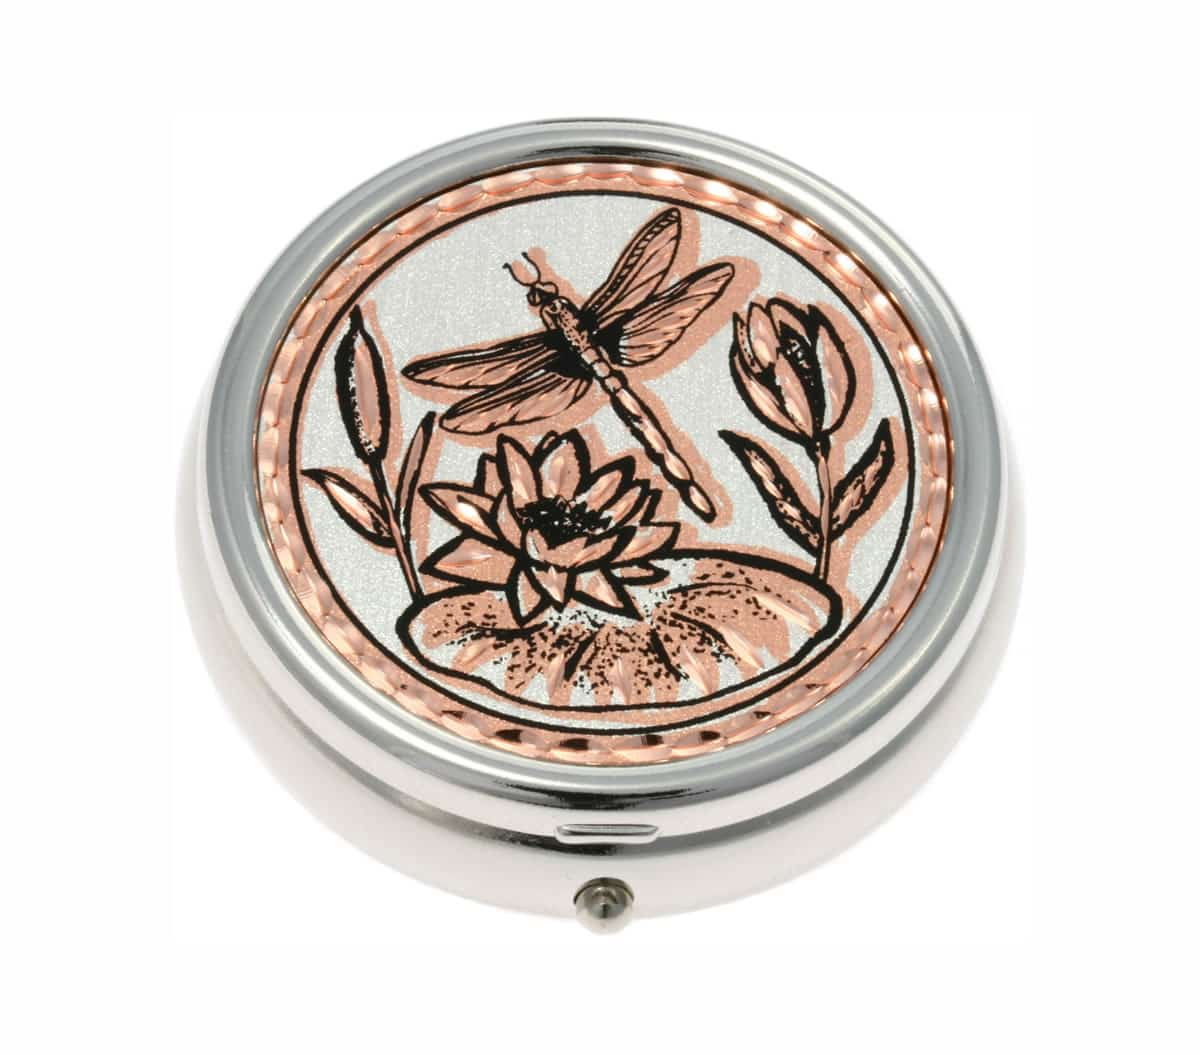 Unique Copper Gifts For Women, Dragonfly Pill Boxes